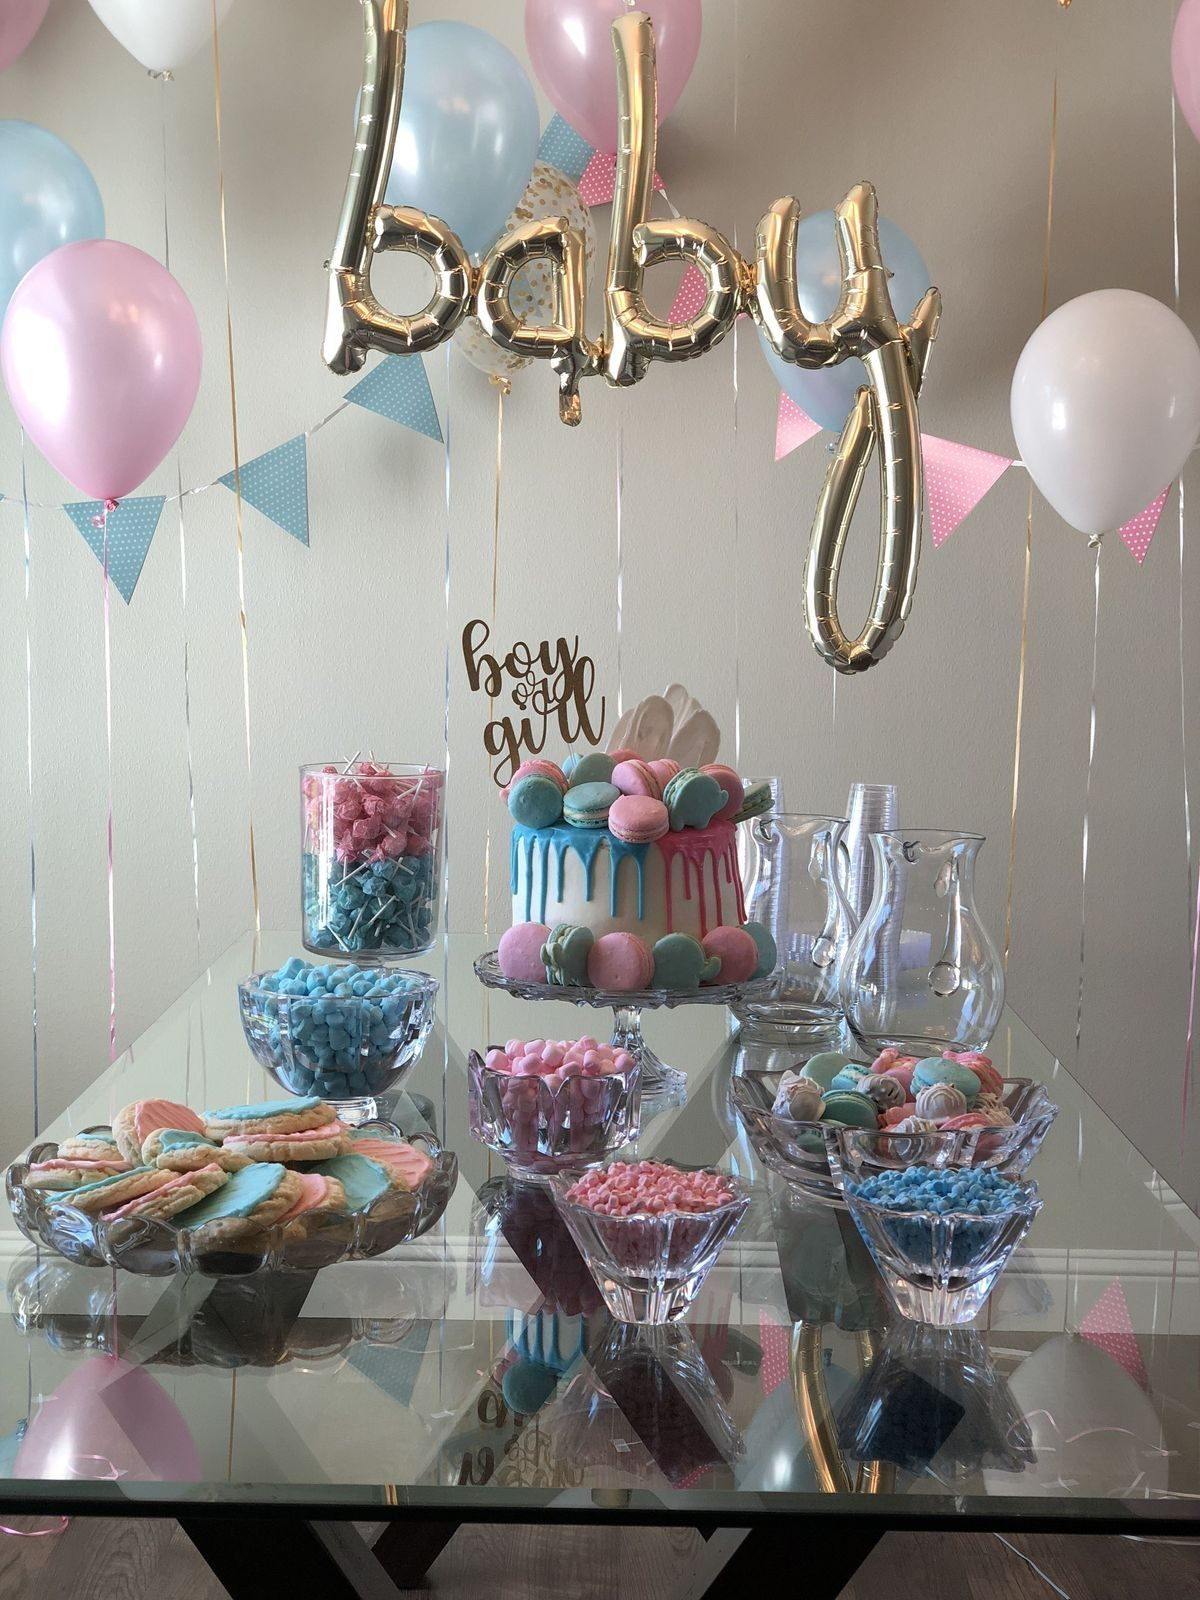 Shawn Mendes Imagines Gender Reveal Party Gender Reveal Party Food Gender Reveal Party Theme